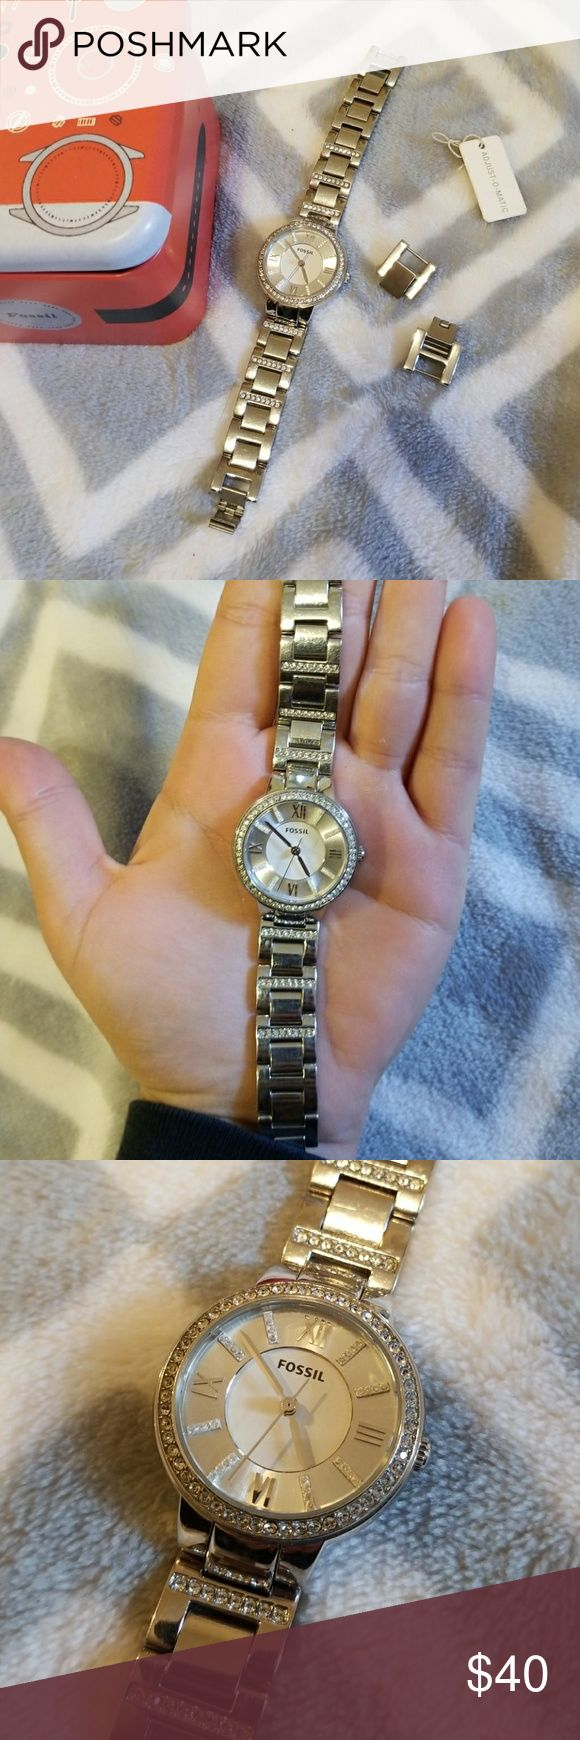 ▪FOSSIL▪ Watch Gorgeous silver watch with Roman numerals and crystals on the face.  Crystals also surround the face and line some of the links.  Comes with two extra links. It does need the battery replace by a professional.  Some slight scratching on links as seen in photos. Fossil Accessories Watches